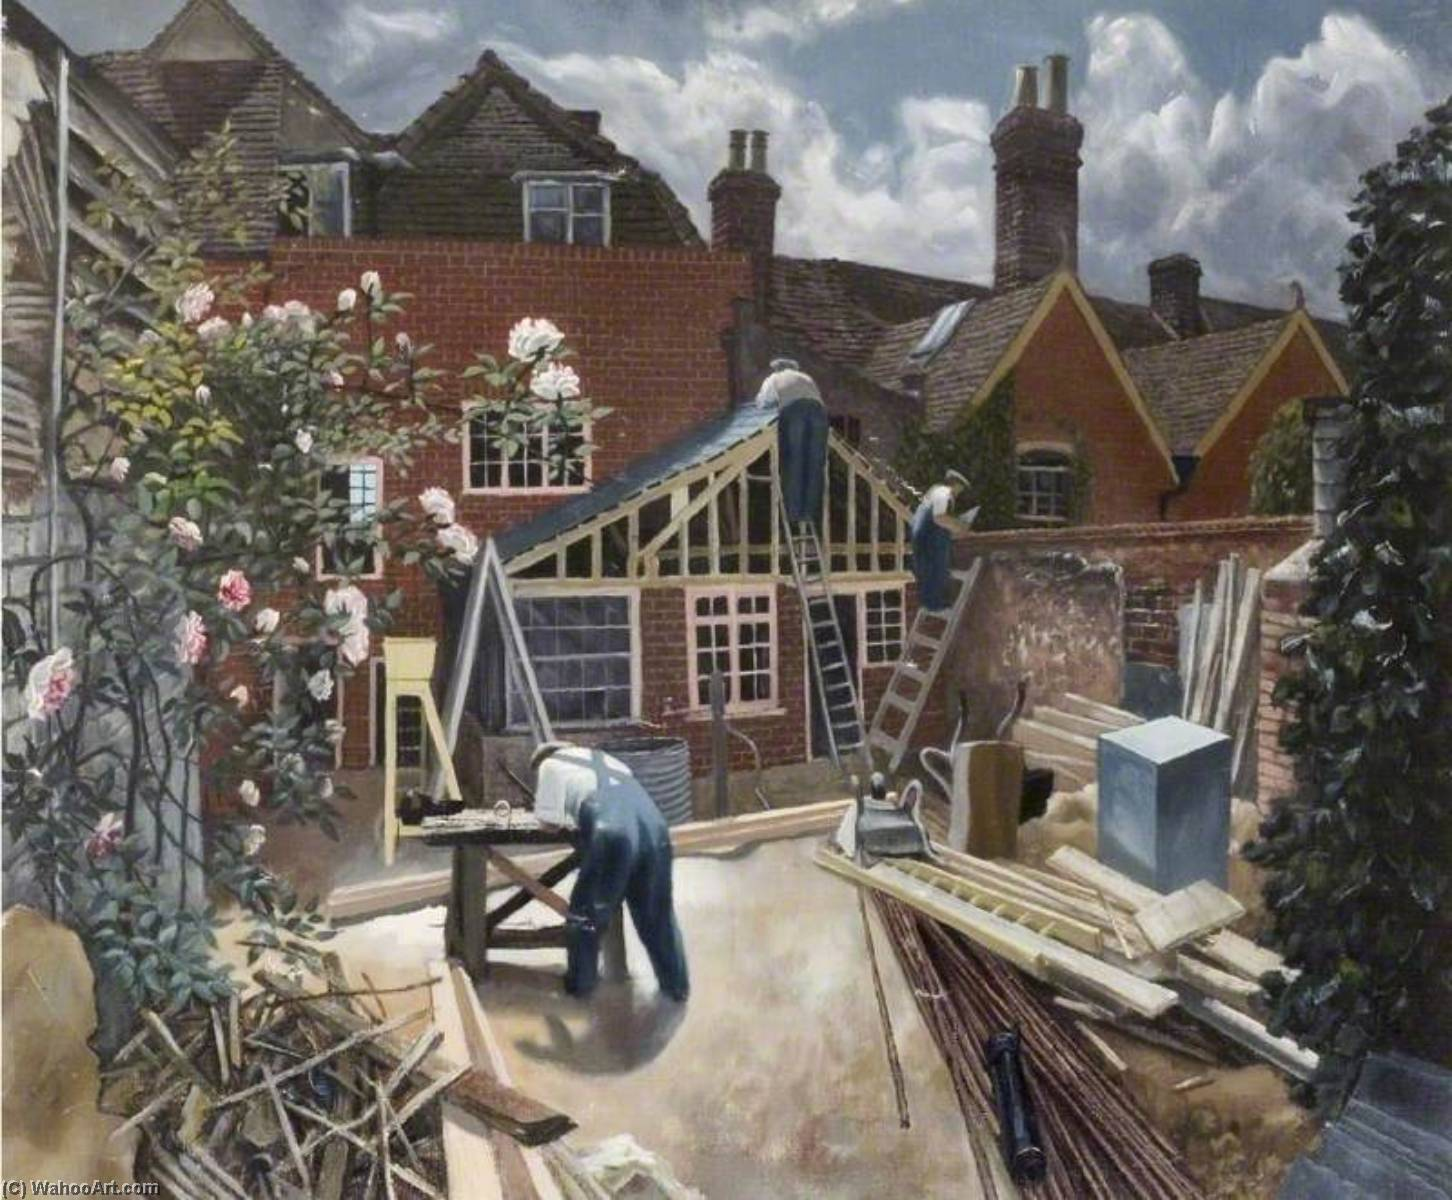 Builders at Work, Brick House, Great Bardfield, Oil On Canvas by John Arthur Malcolm Aldridge